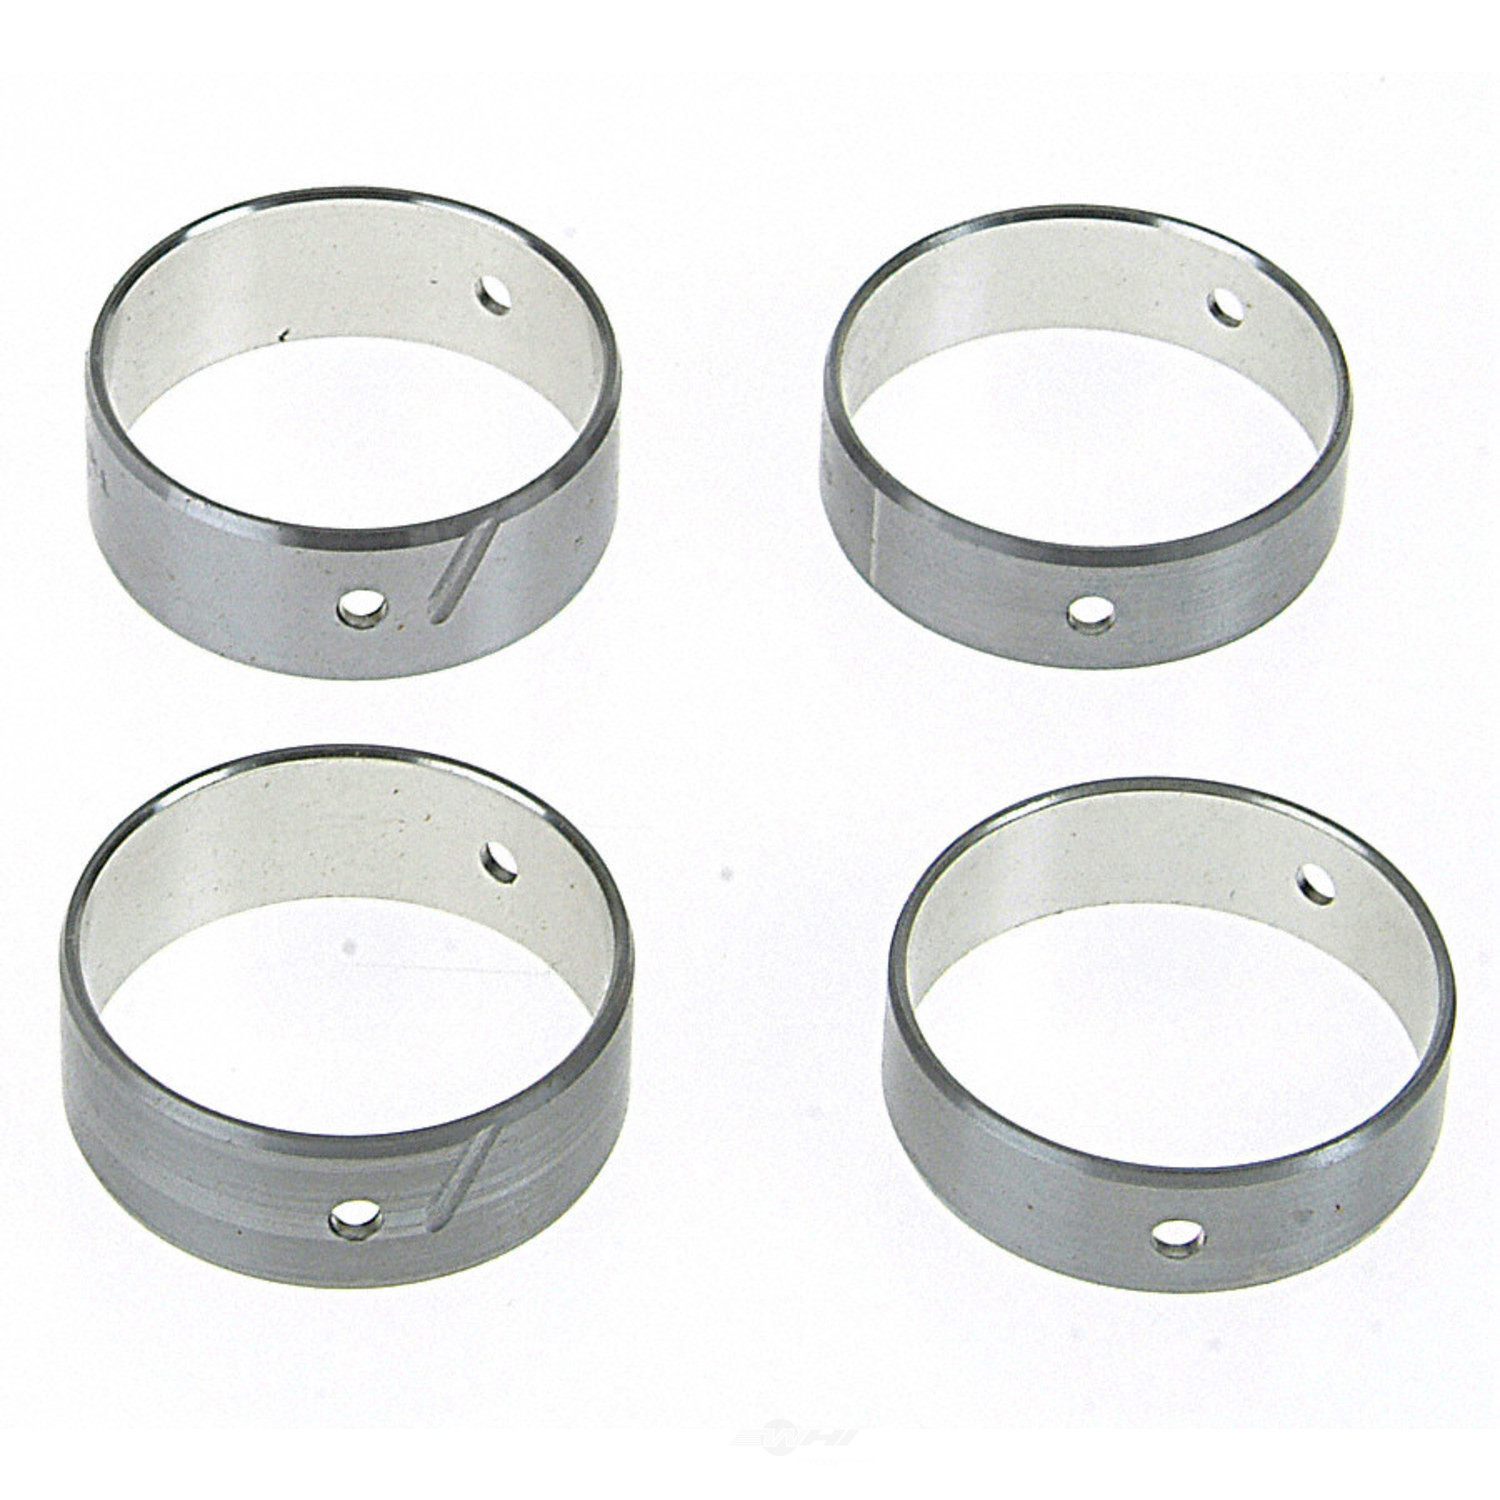 SEALED POWER - Engine Camshaft Bearing Set - SEA 1889M